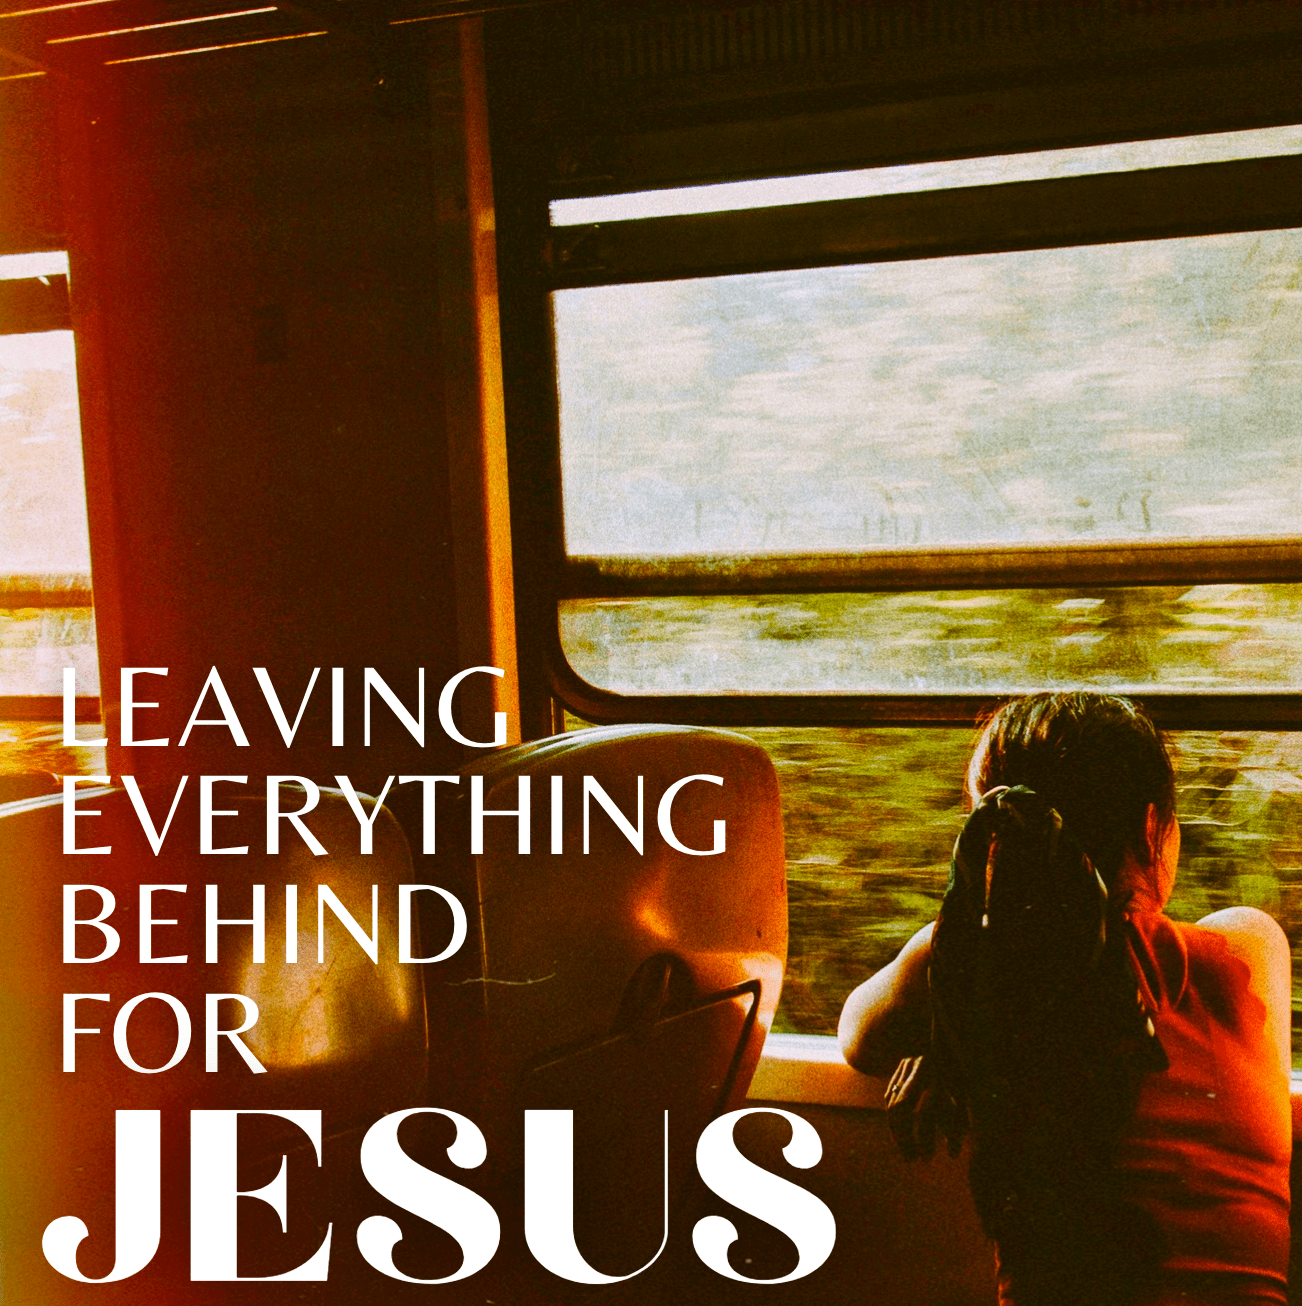 Leaving Everything Behind For Jesus